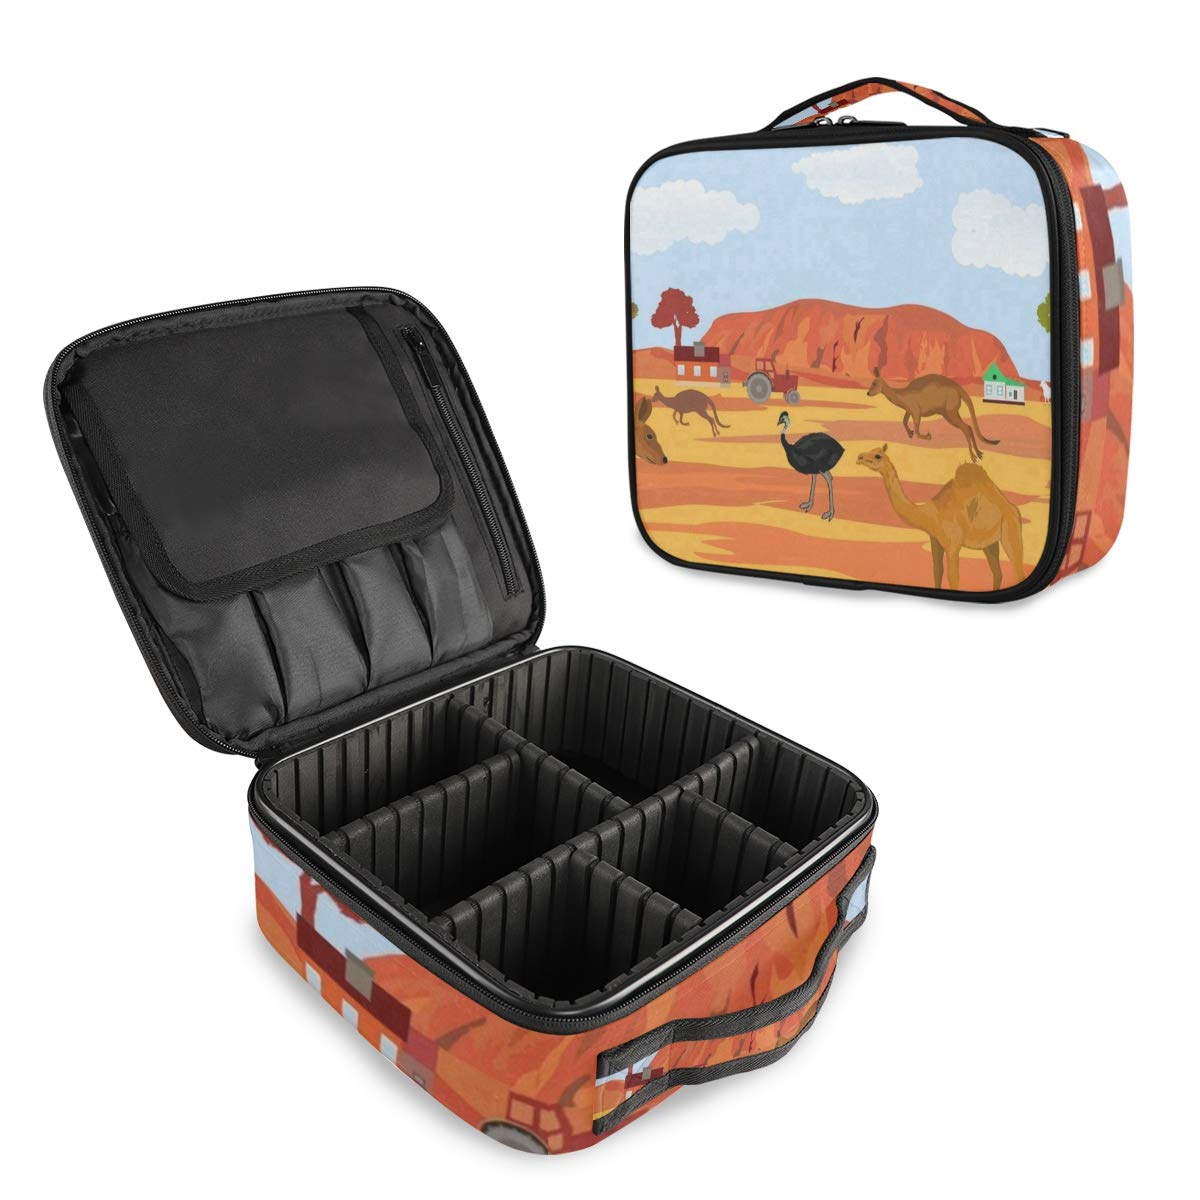 SLHFPX Travel Makeup Case Australia Kangaroo Ostrich Cosmetic Bag Box Professional Train Case Large Make Up Storage Organizer with Adjustable Dividers & Brush Section for Women Girls Hard Shell